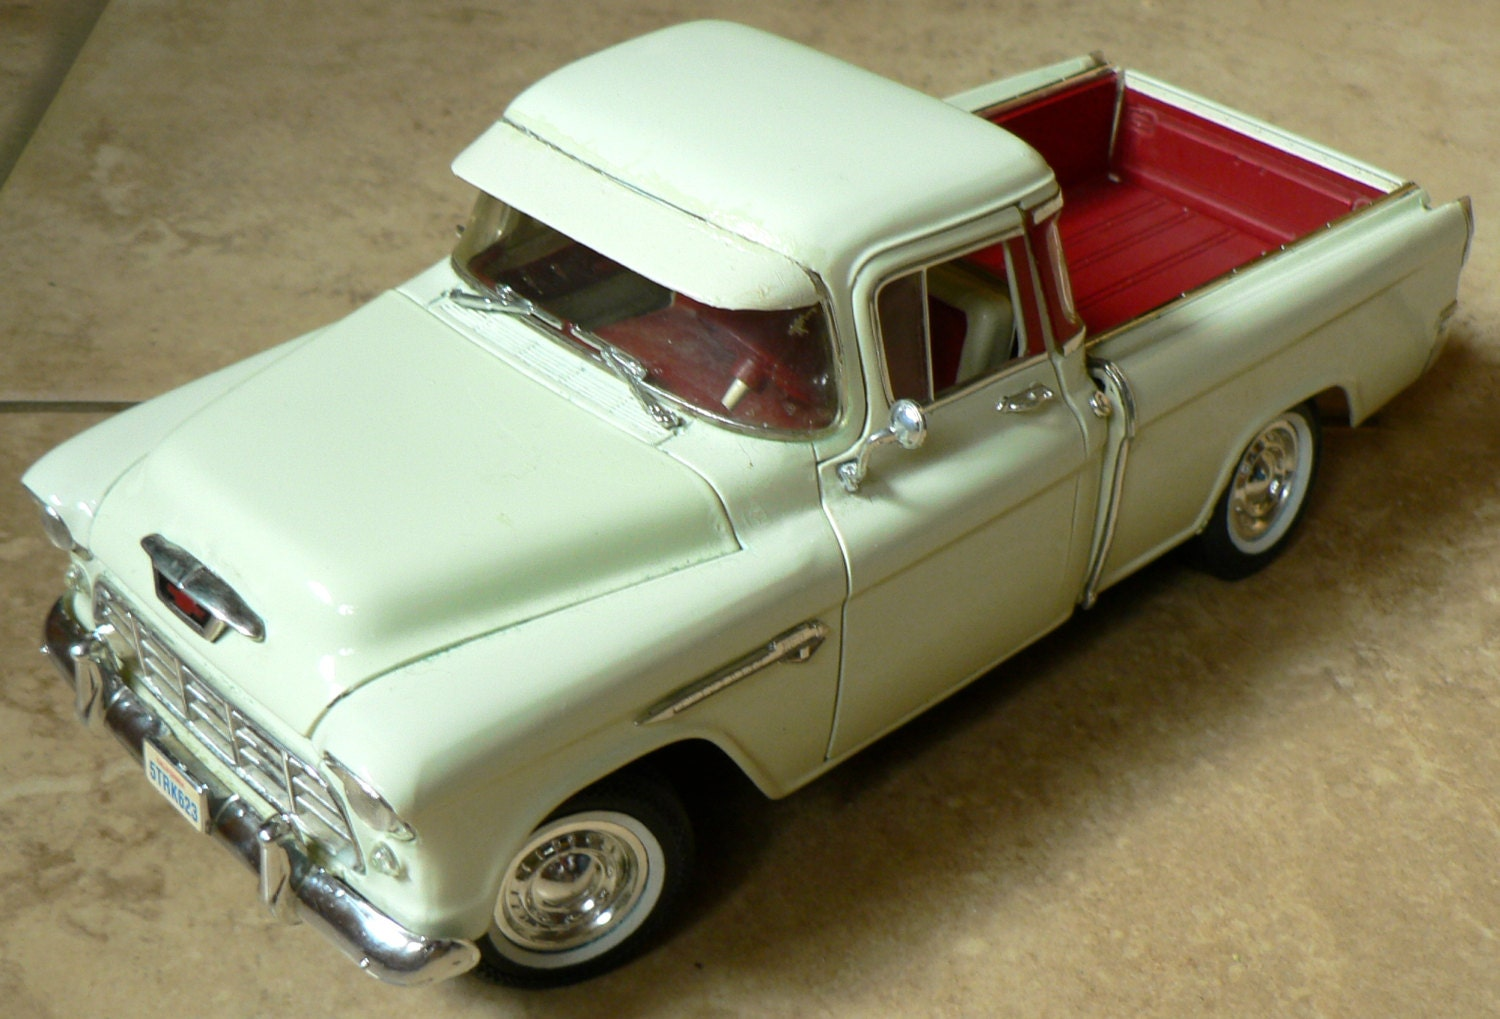 Toy Model Trucks : Ertl diecast toy chevy pick up truck collectible model